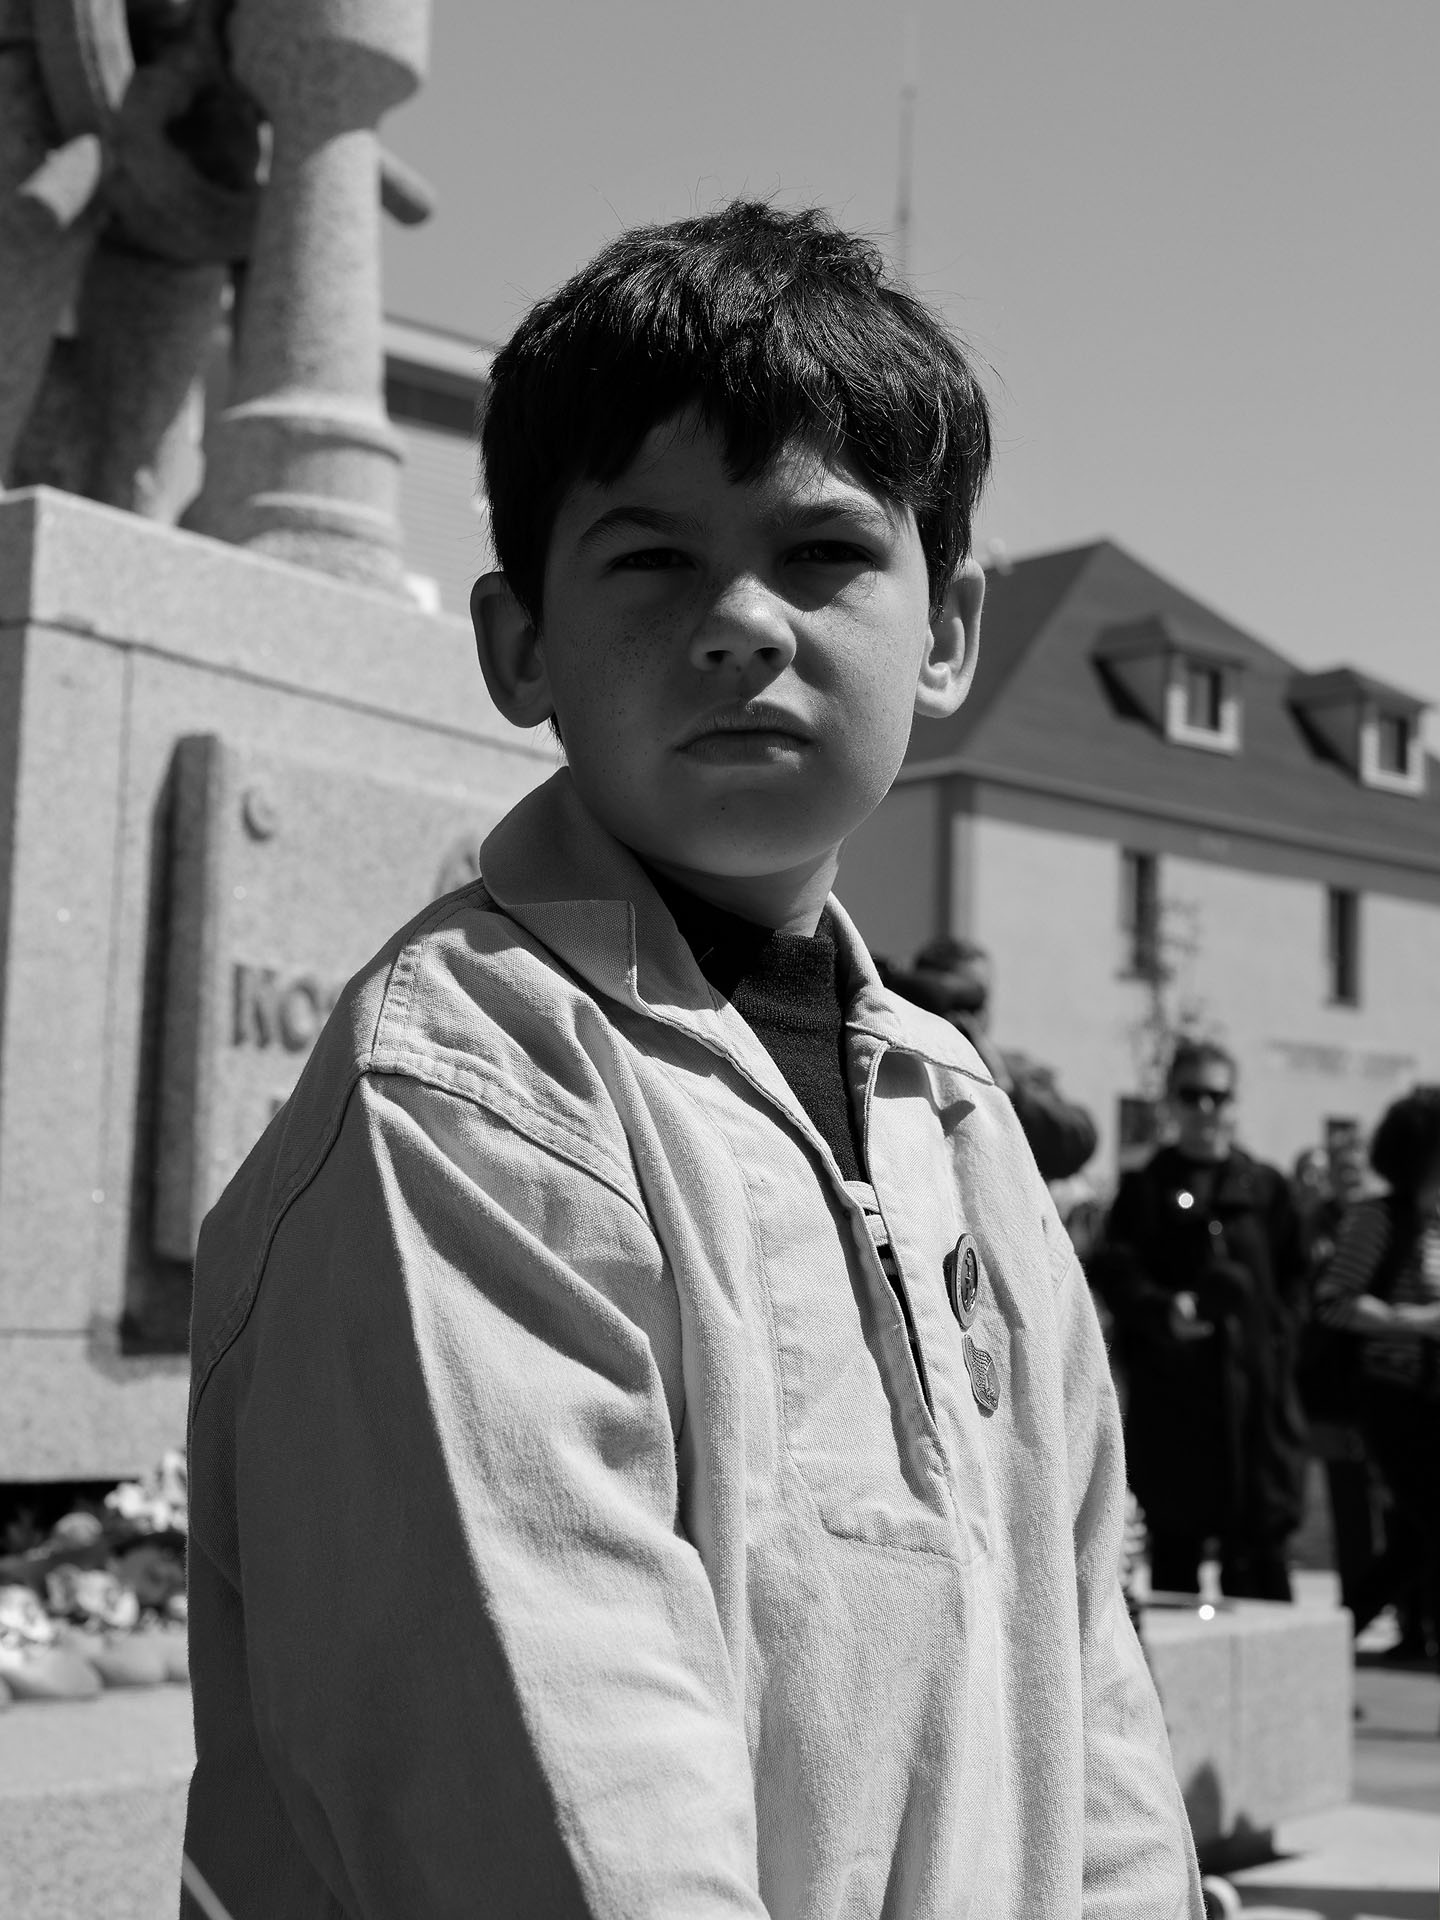 portrait of young boy with black hair in the sun in black and white by Guillaume Simoneau in Saint-Pierre-et-Miquelon for M le mag Le Monde